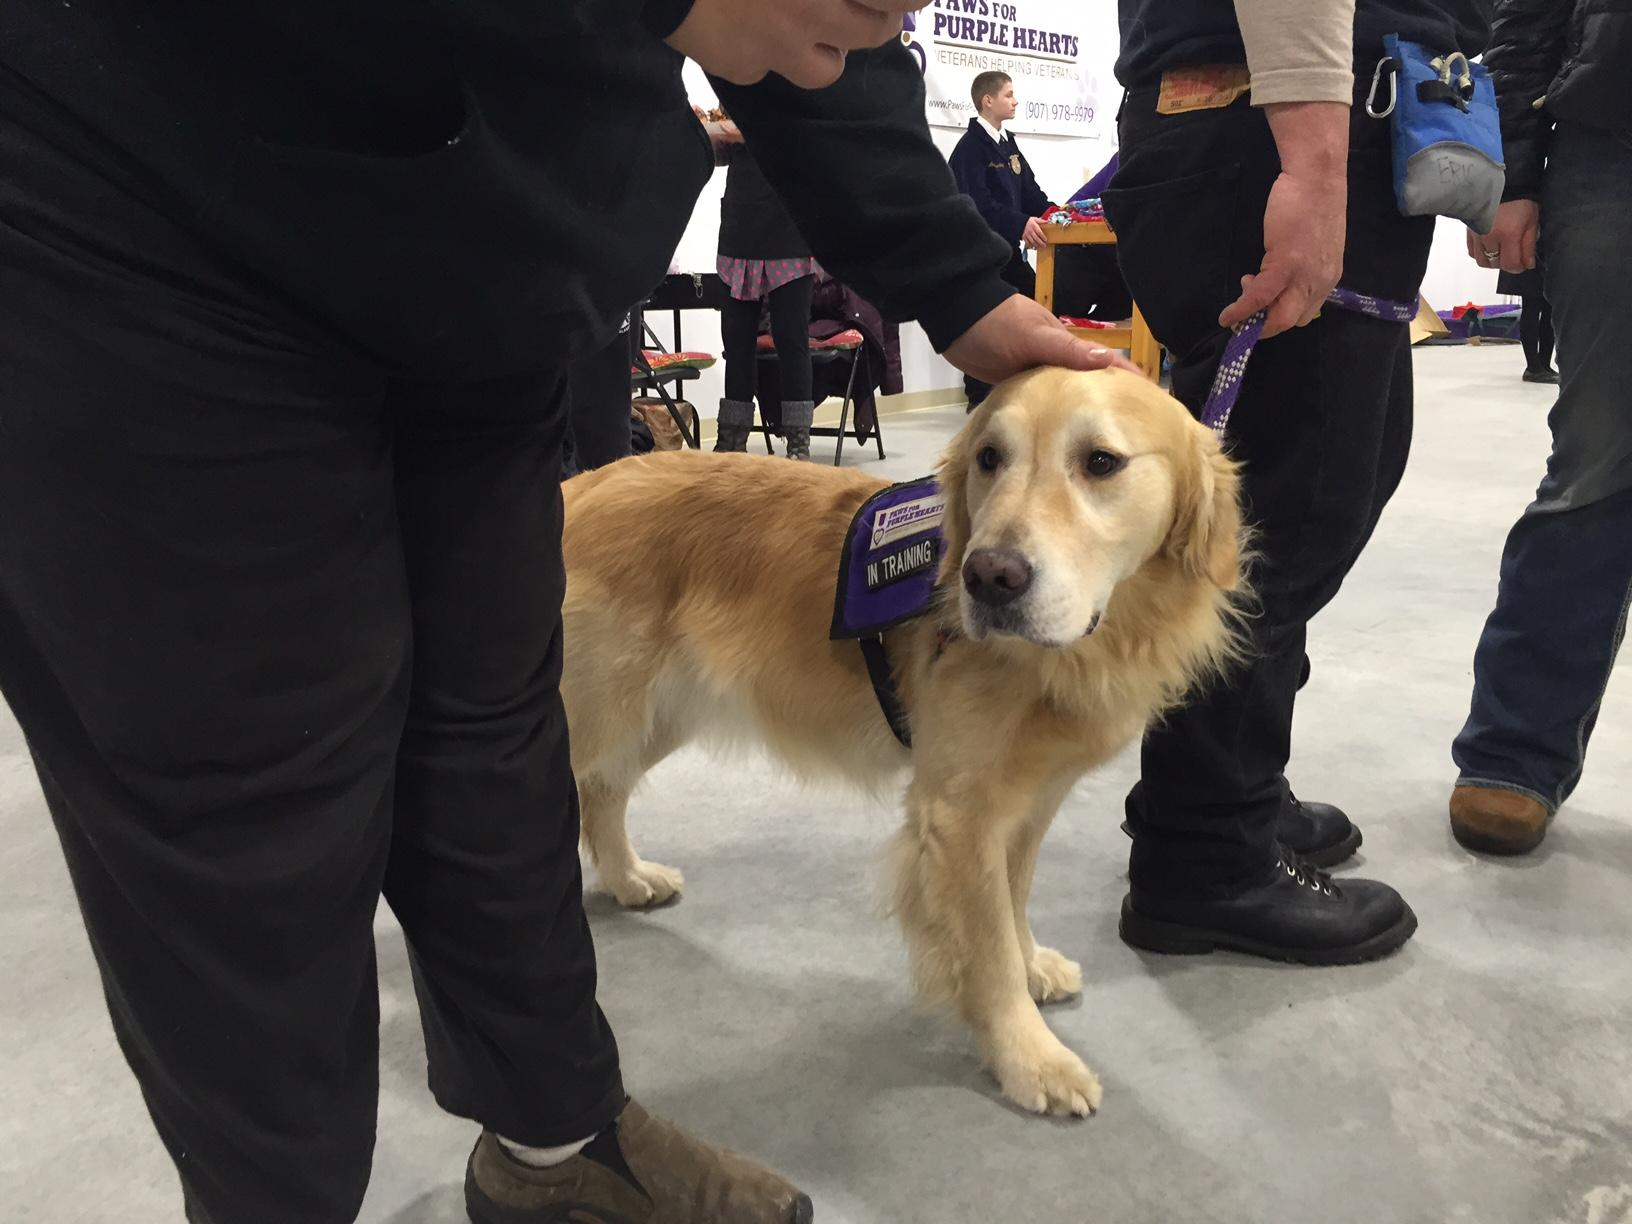 A Paws For Purple Hearts service dog greets visitors during an open house at the group's new training center in south Fairbanks November 12th. (Dan Bross, KUAC - Fairbanks)